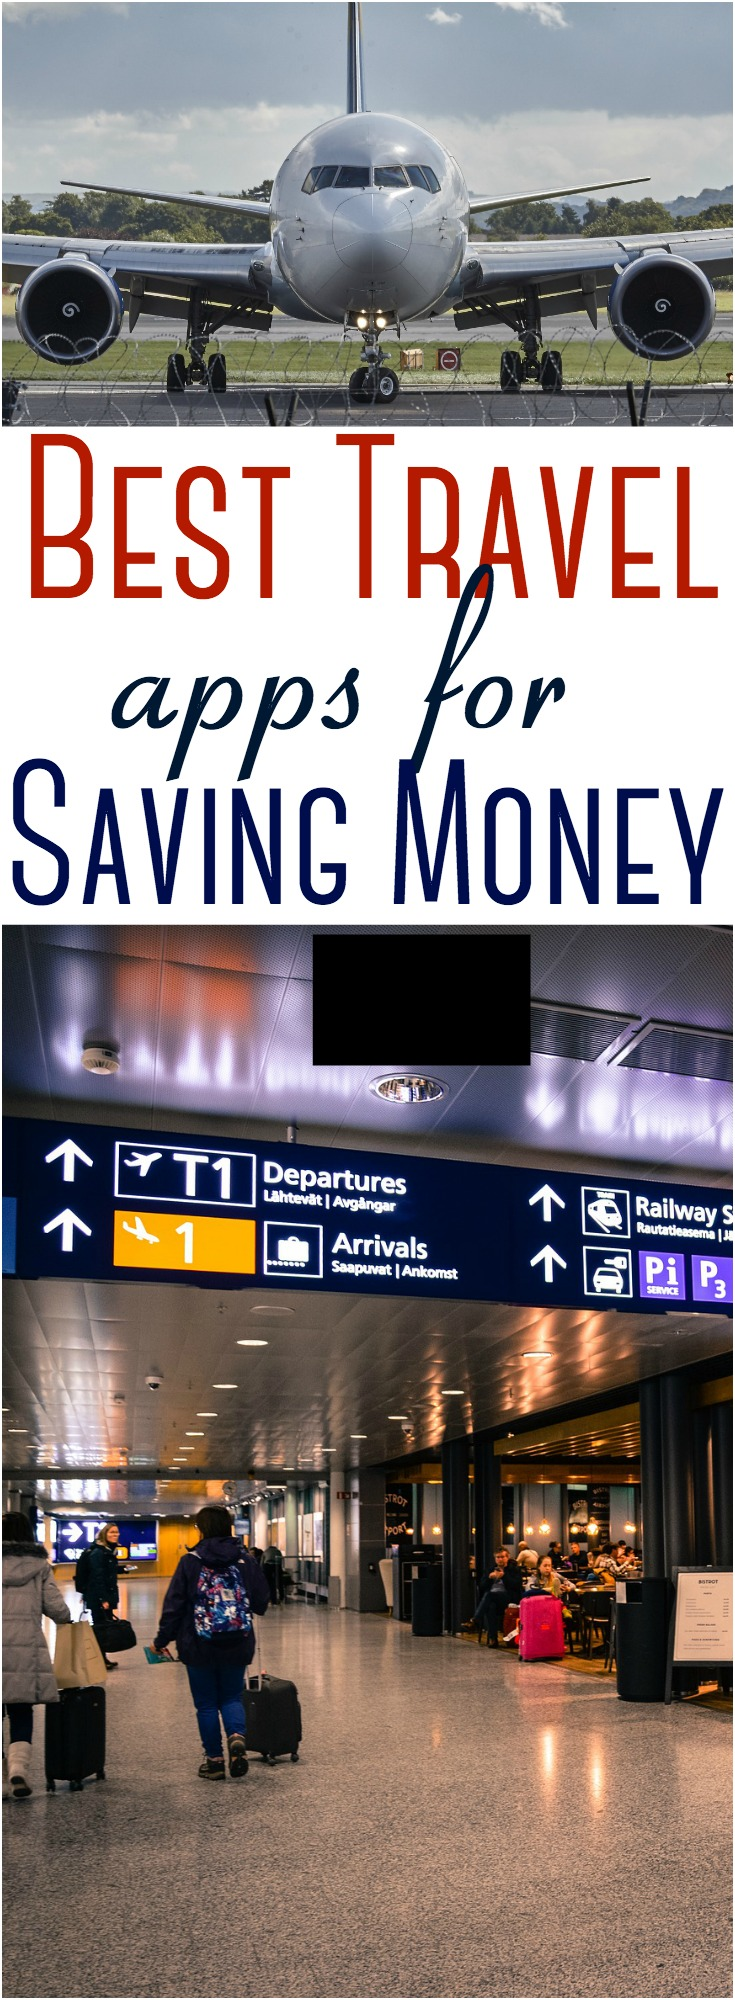 Love to travel? Grab a list of the BEST apps to have to help you save on your trip!  #travel #apps #family #business #savingmoney #budget #finance #flight #roadtrip